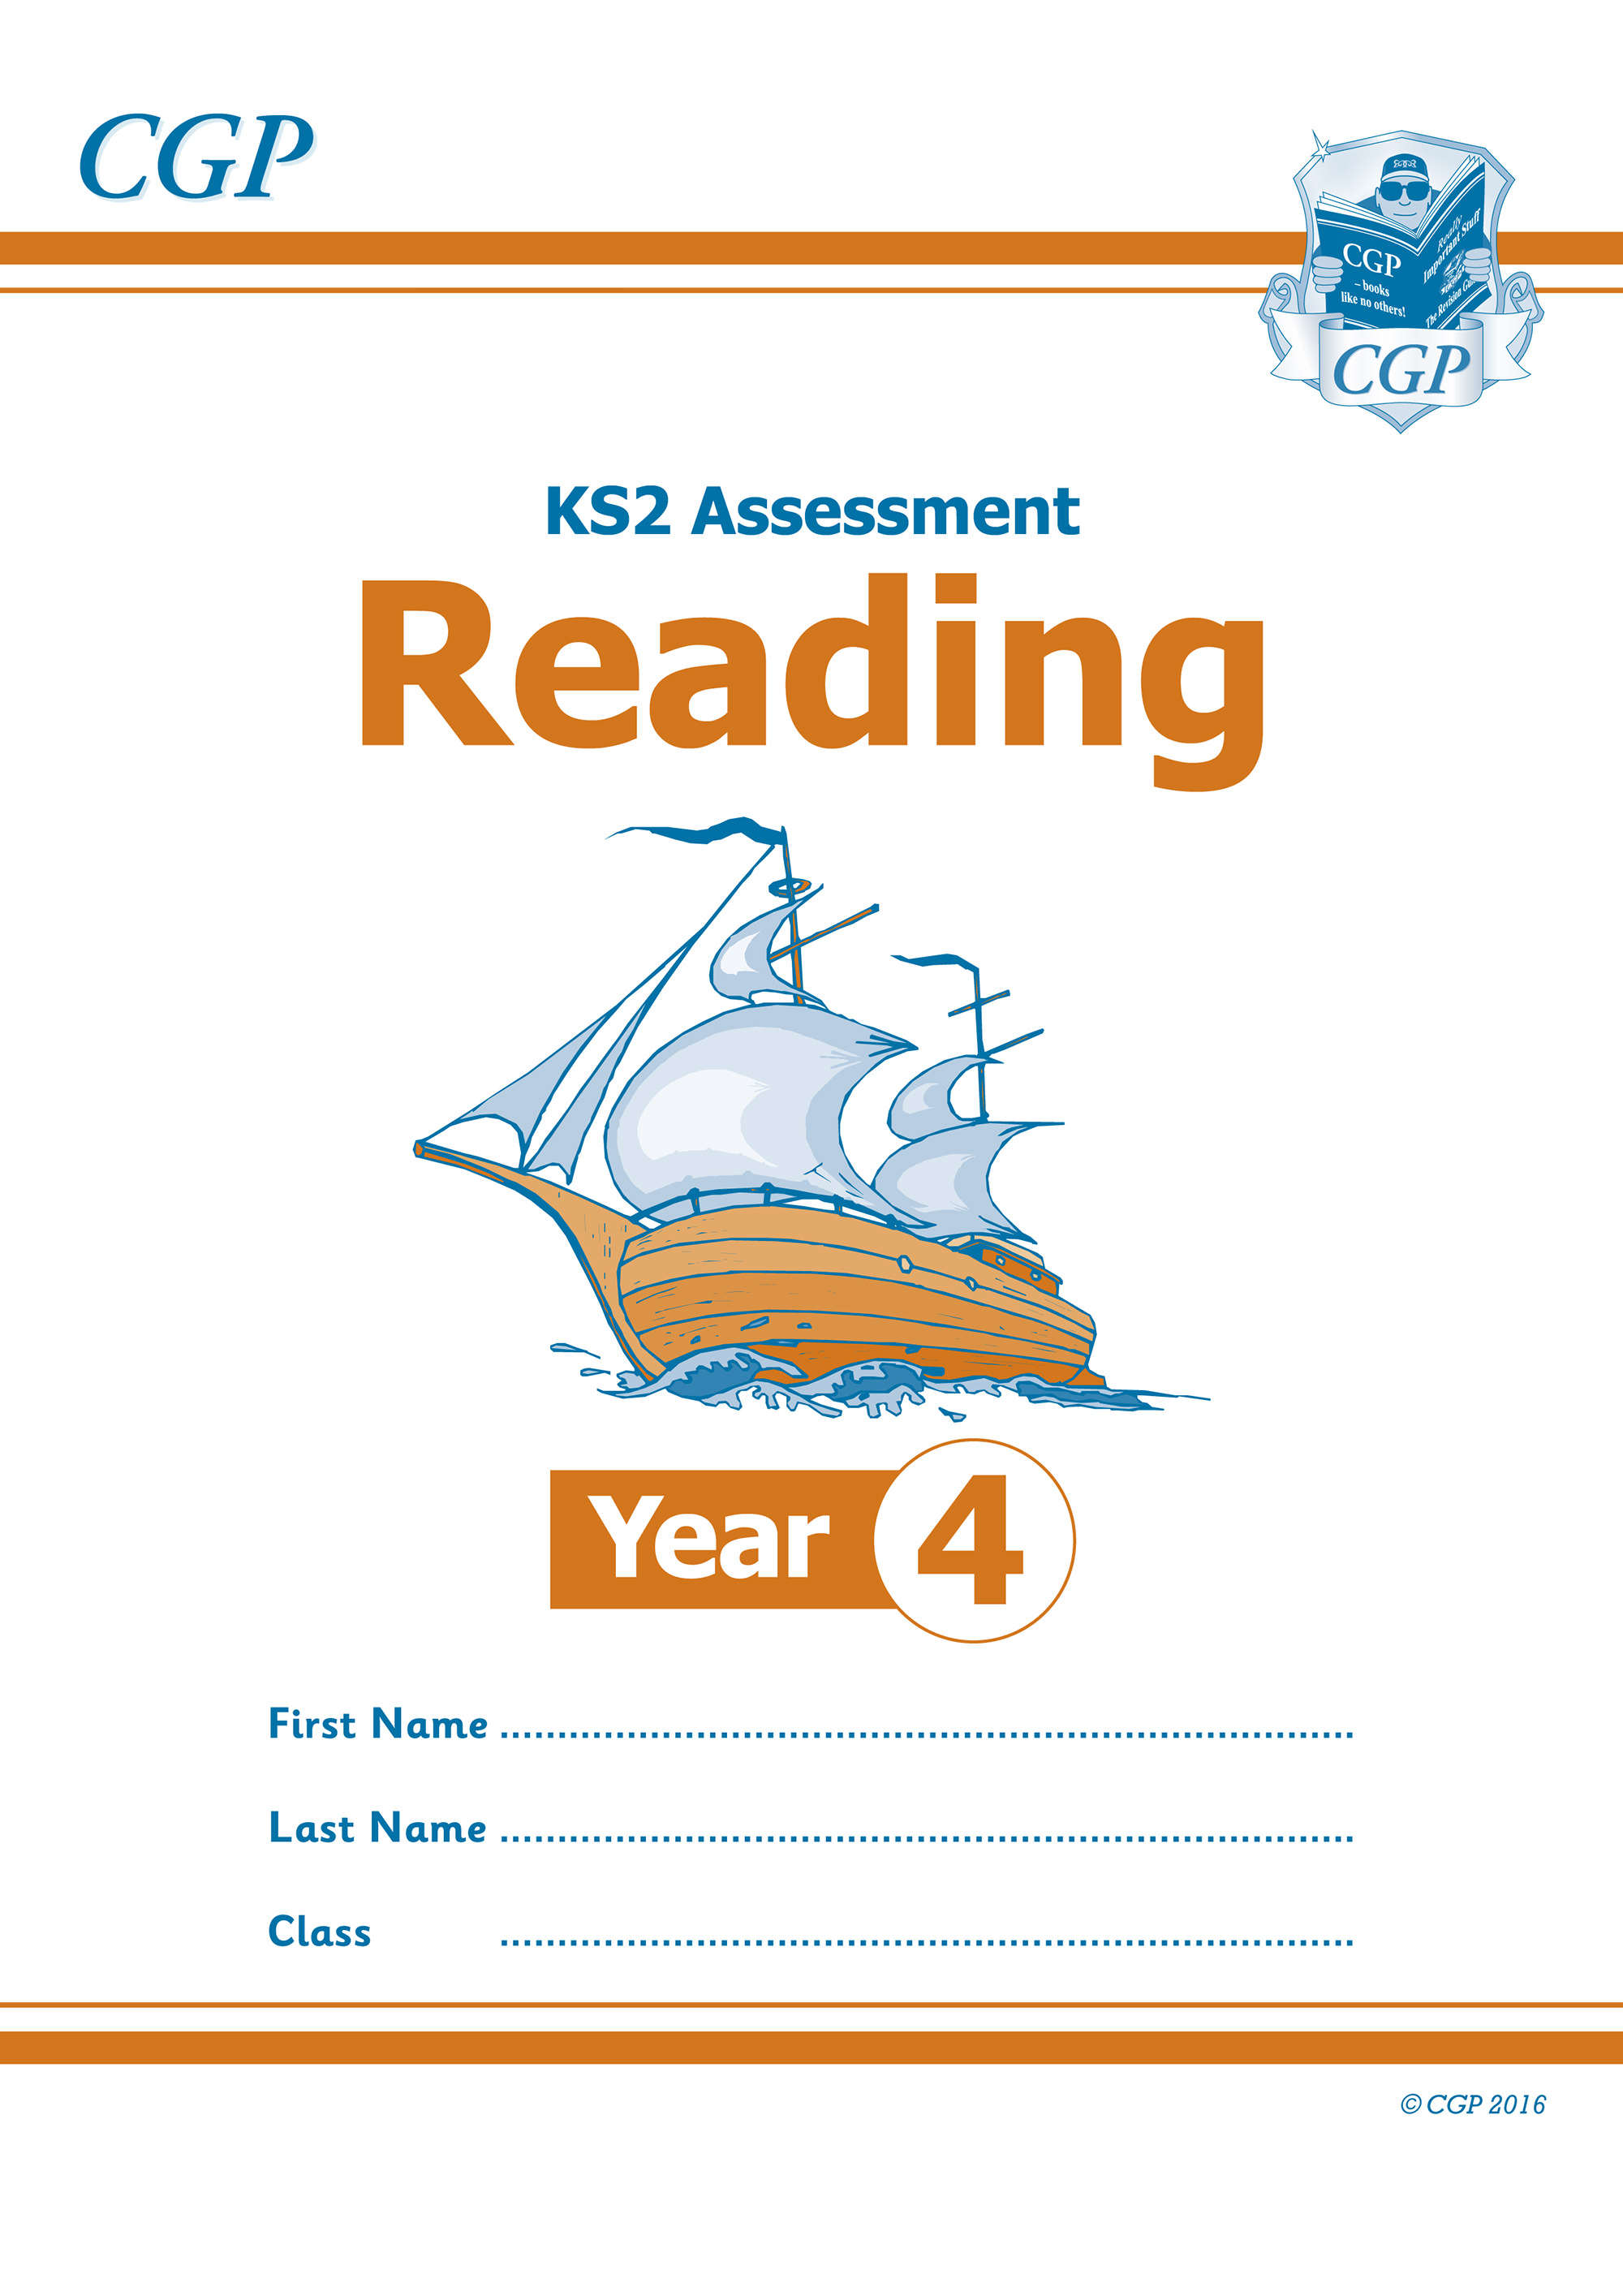 E4RP21 - New KS2 Assessment: Reading - Year 4 Test